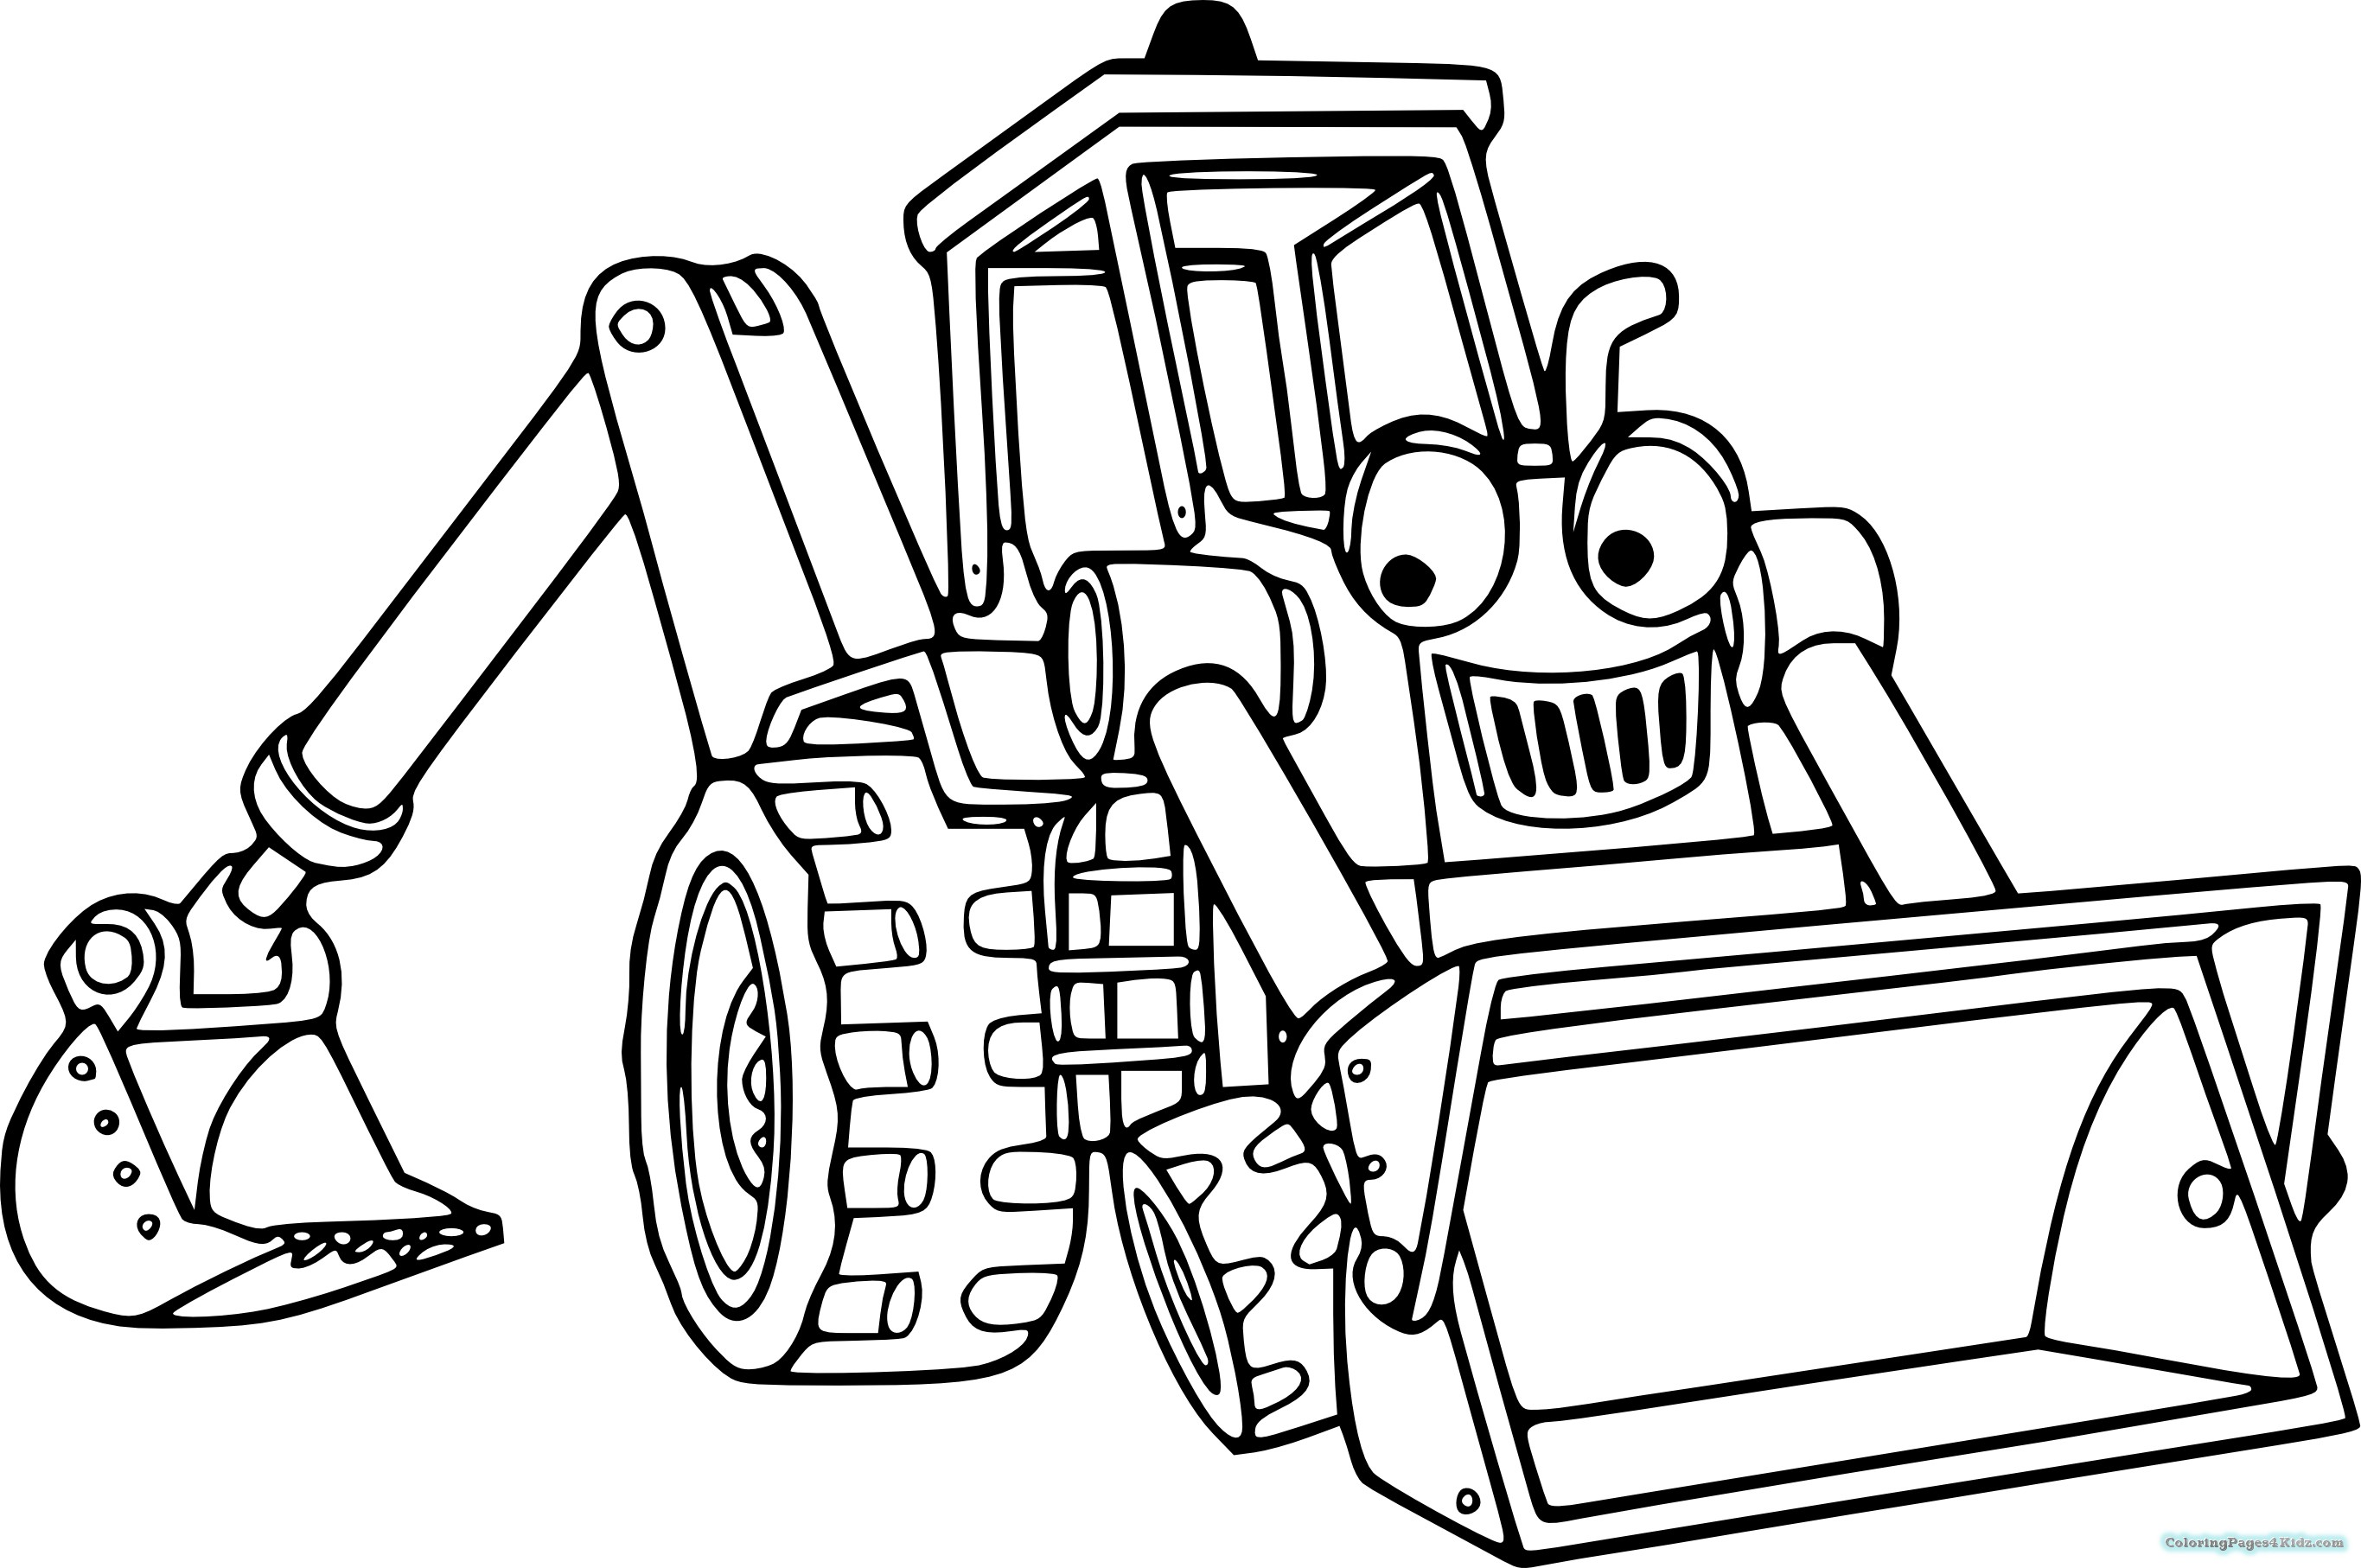 tractor colouring pictures johnny tractor free coloring pages coloring pages for kids colouring tractor pictures